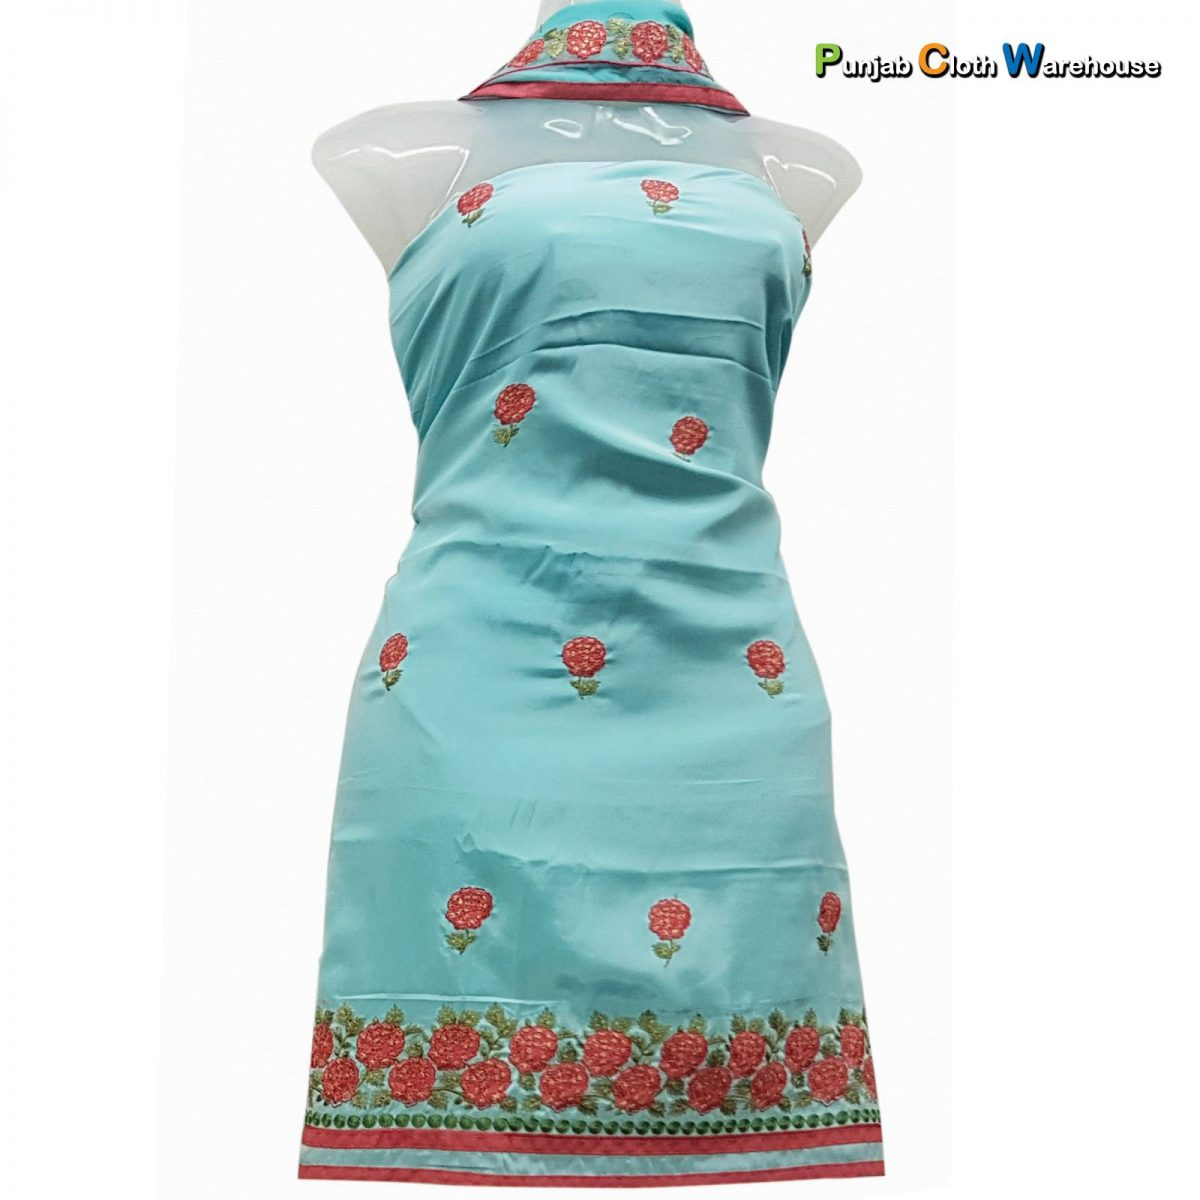 Ladies Suits - Cut Piece - Punjab Cloth Warehouse, Surrey (37)